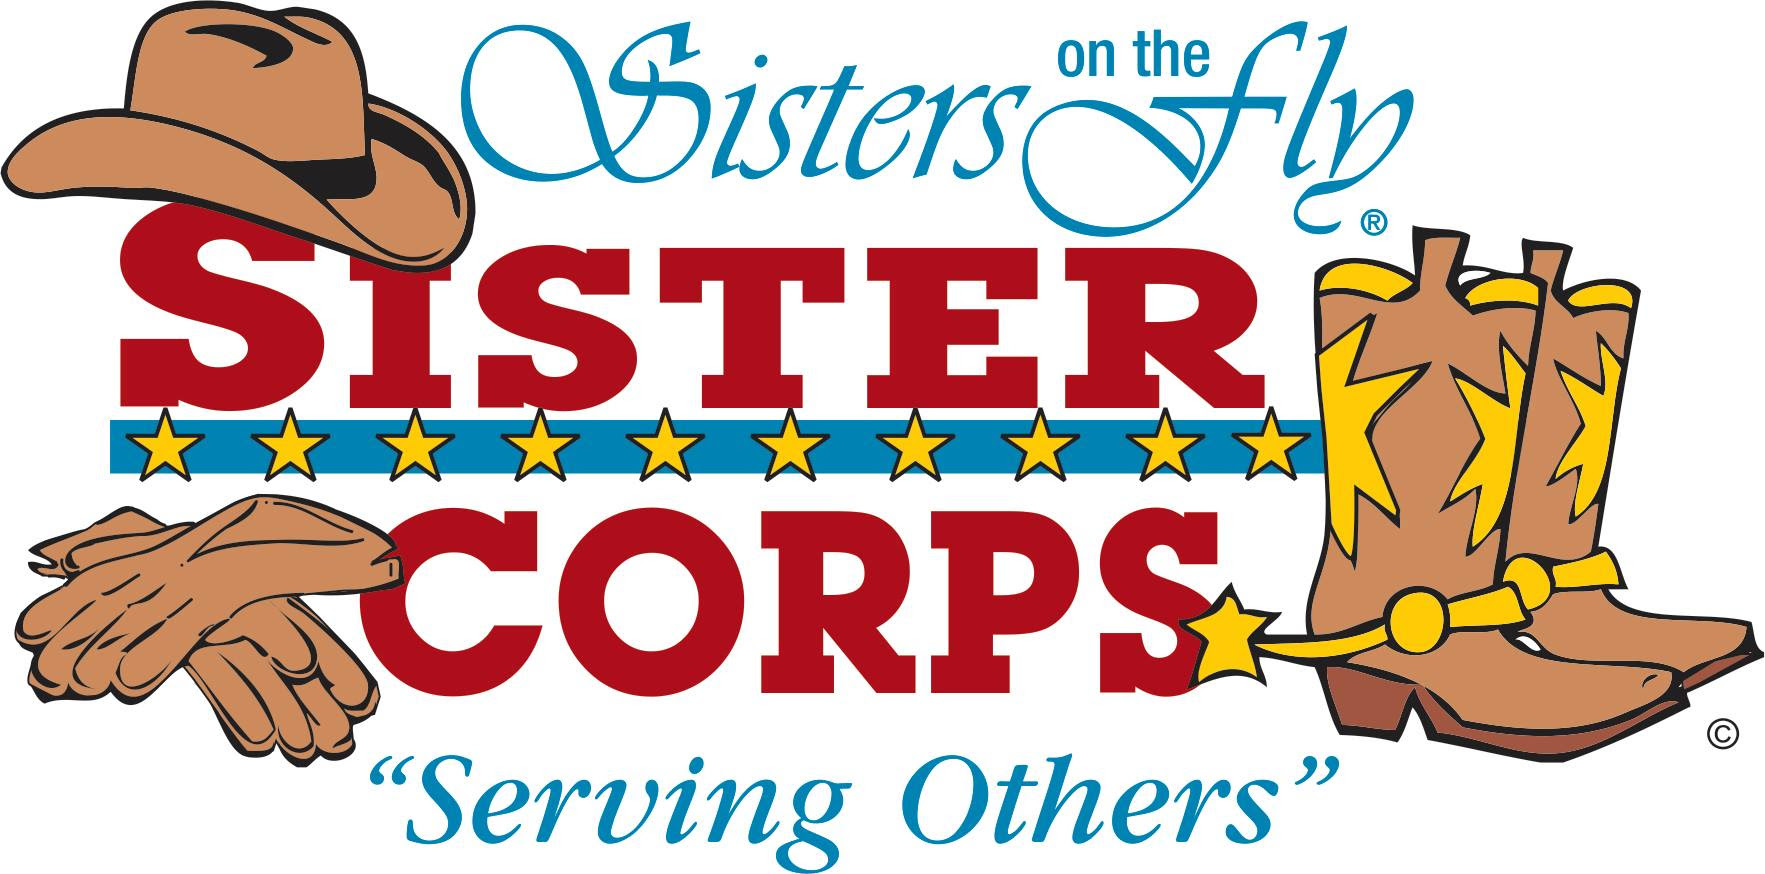 Sister Corps and the Mazie Morrison Foundation